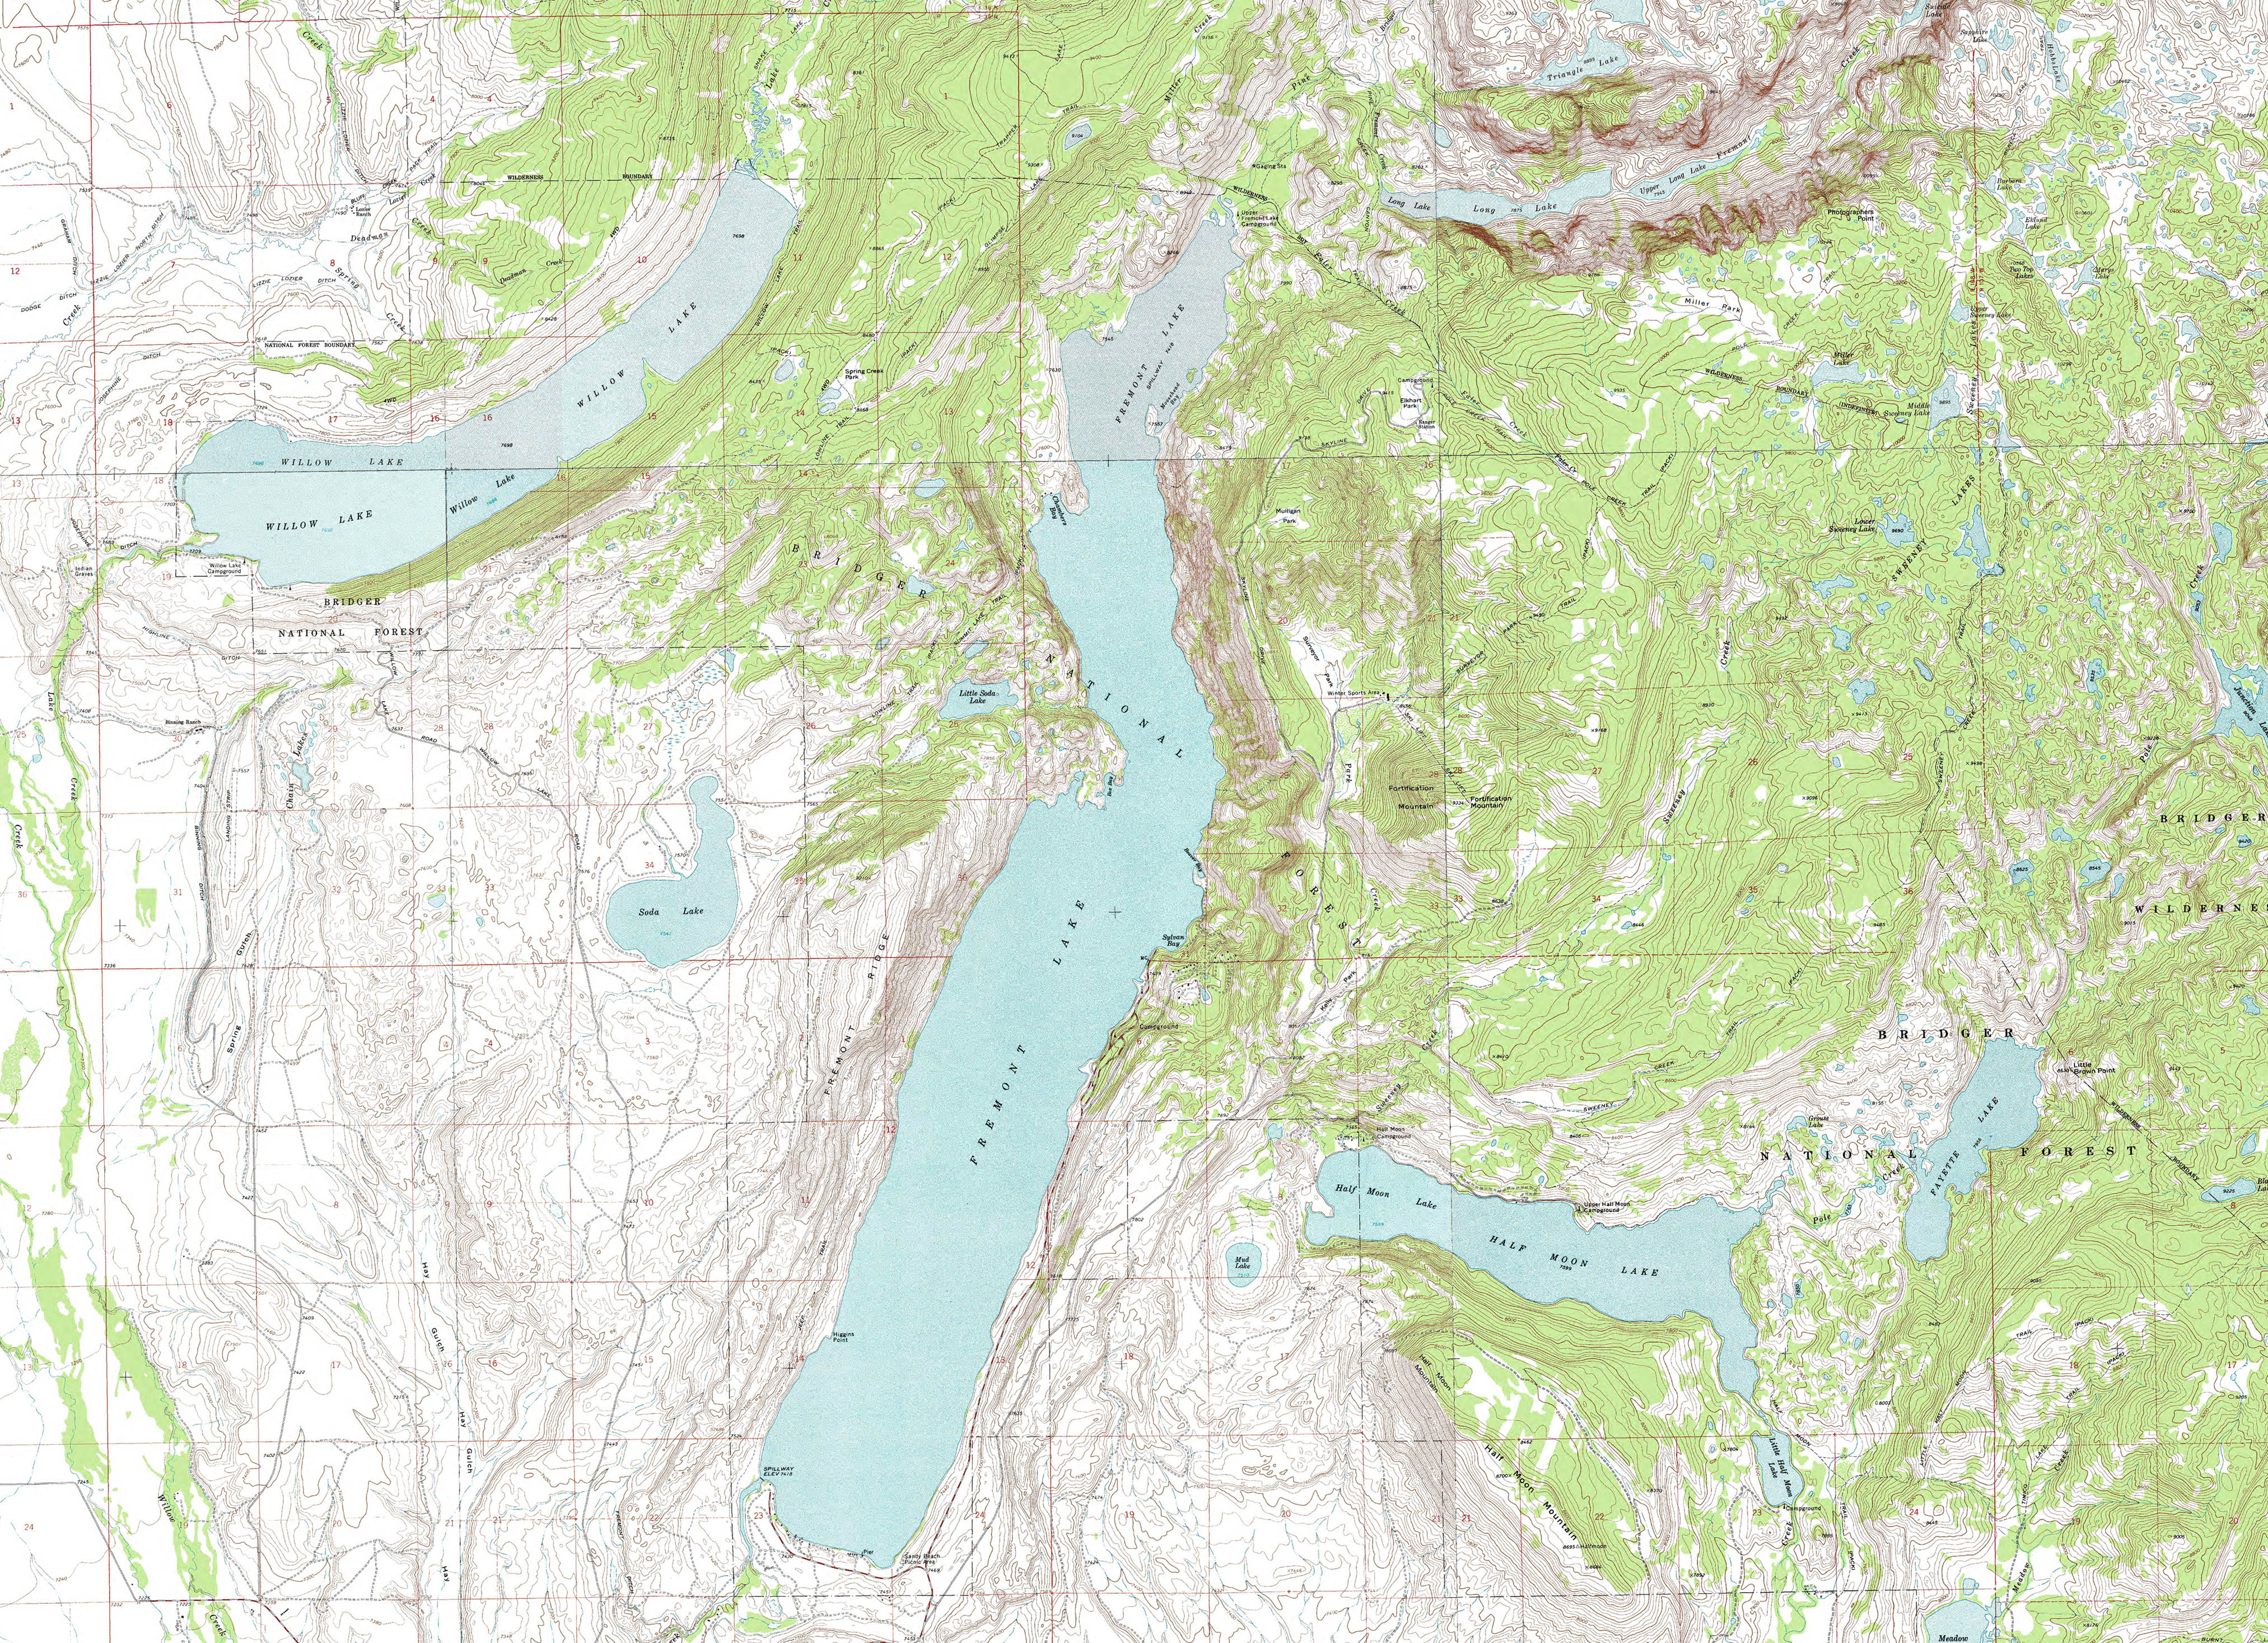 Brochures And Maps For Pinedale And Sublette County Wyoming - Topo maps us forest service